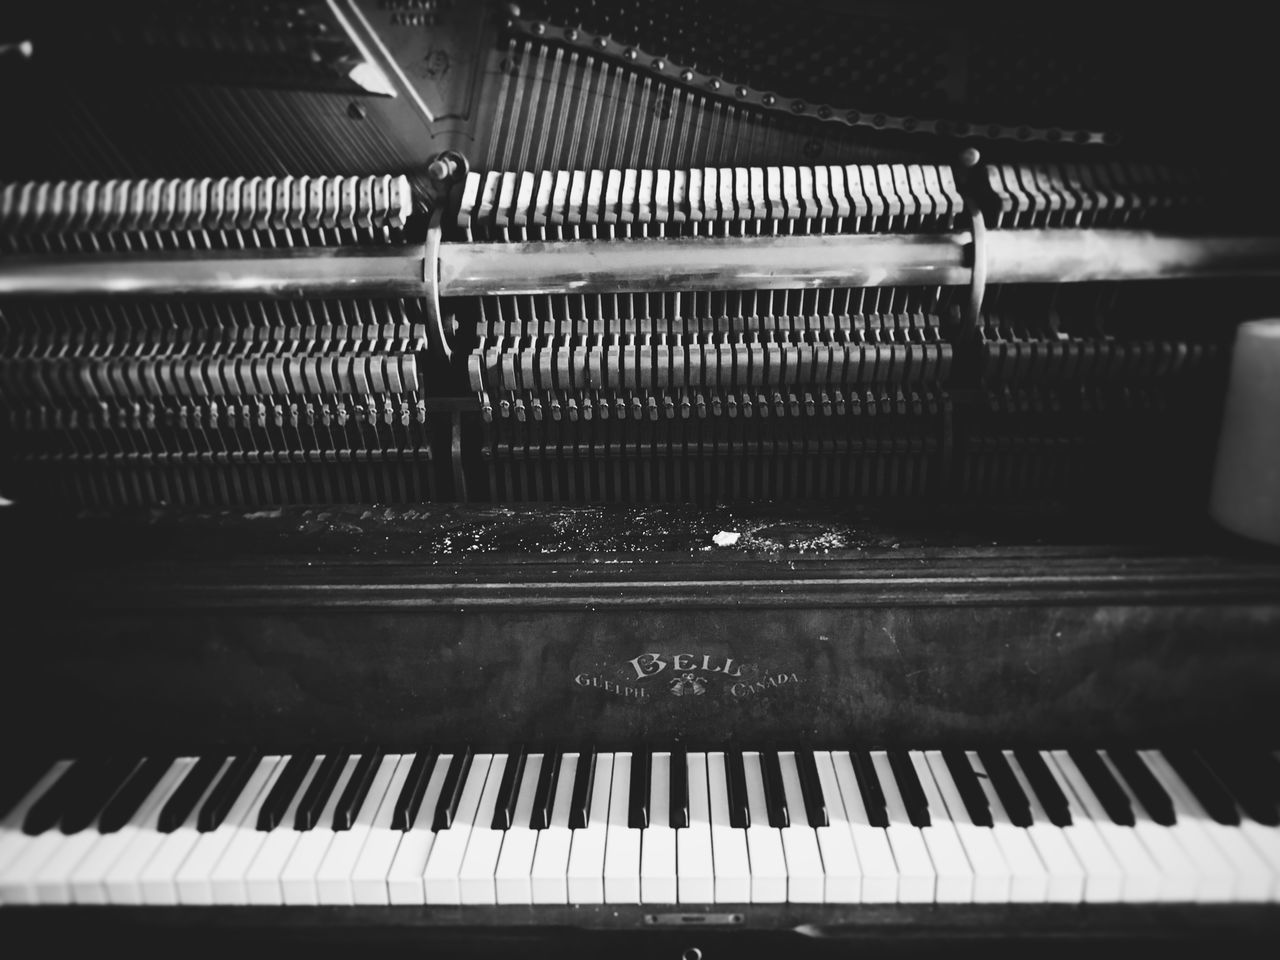 piano, music, musical instrument, piano key, close-up, indoors, no people, arts culture and entertainment, keyboard, day